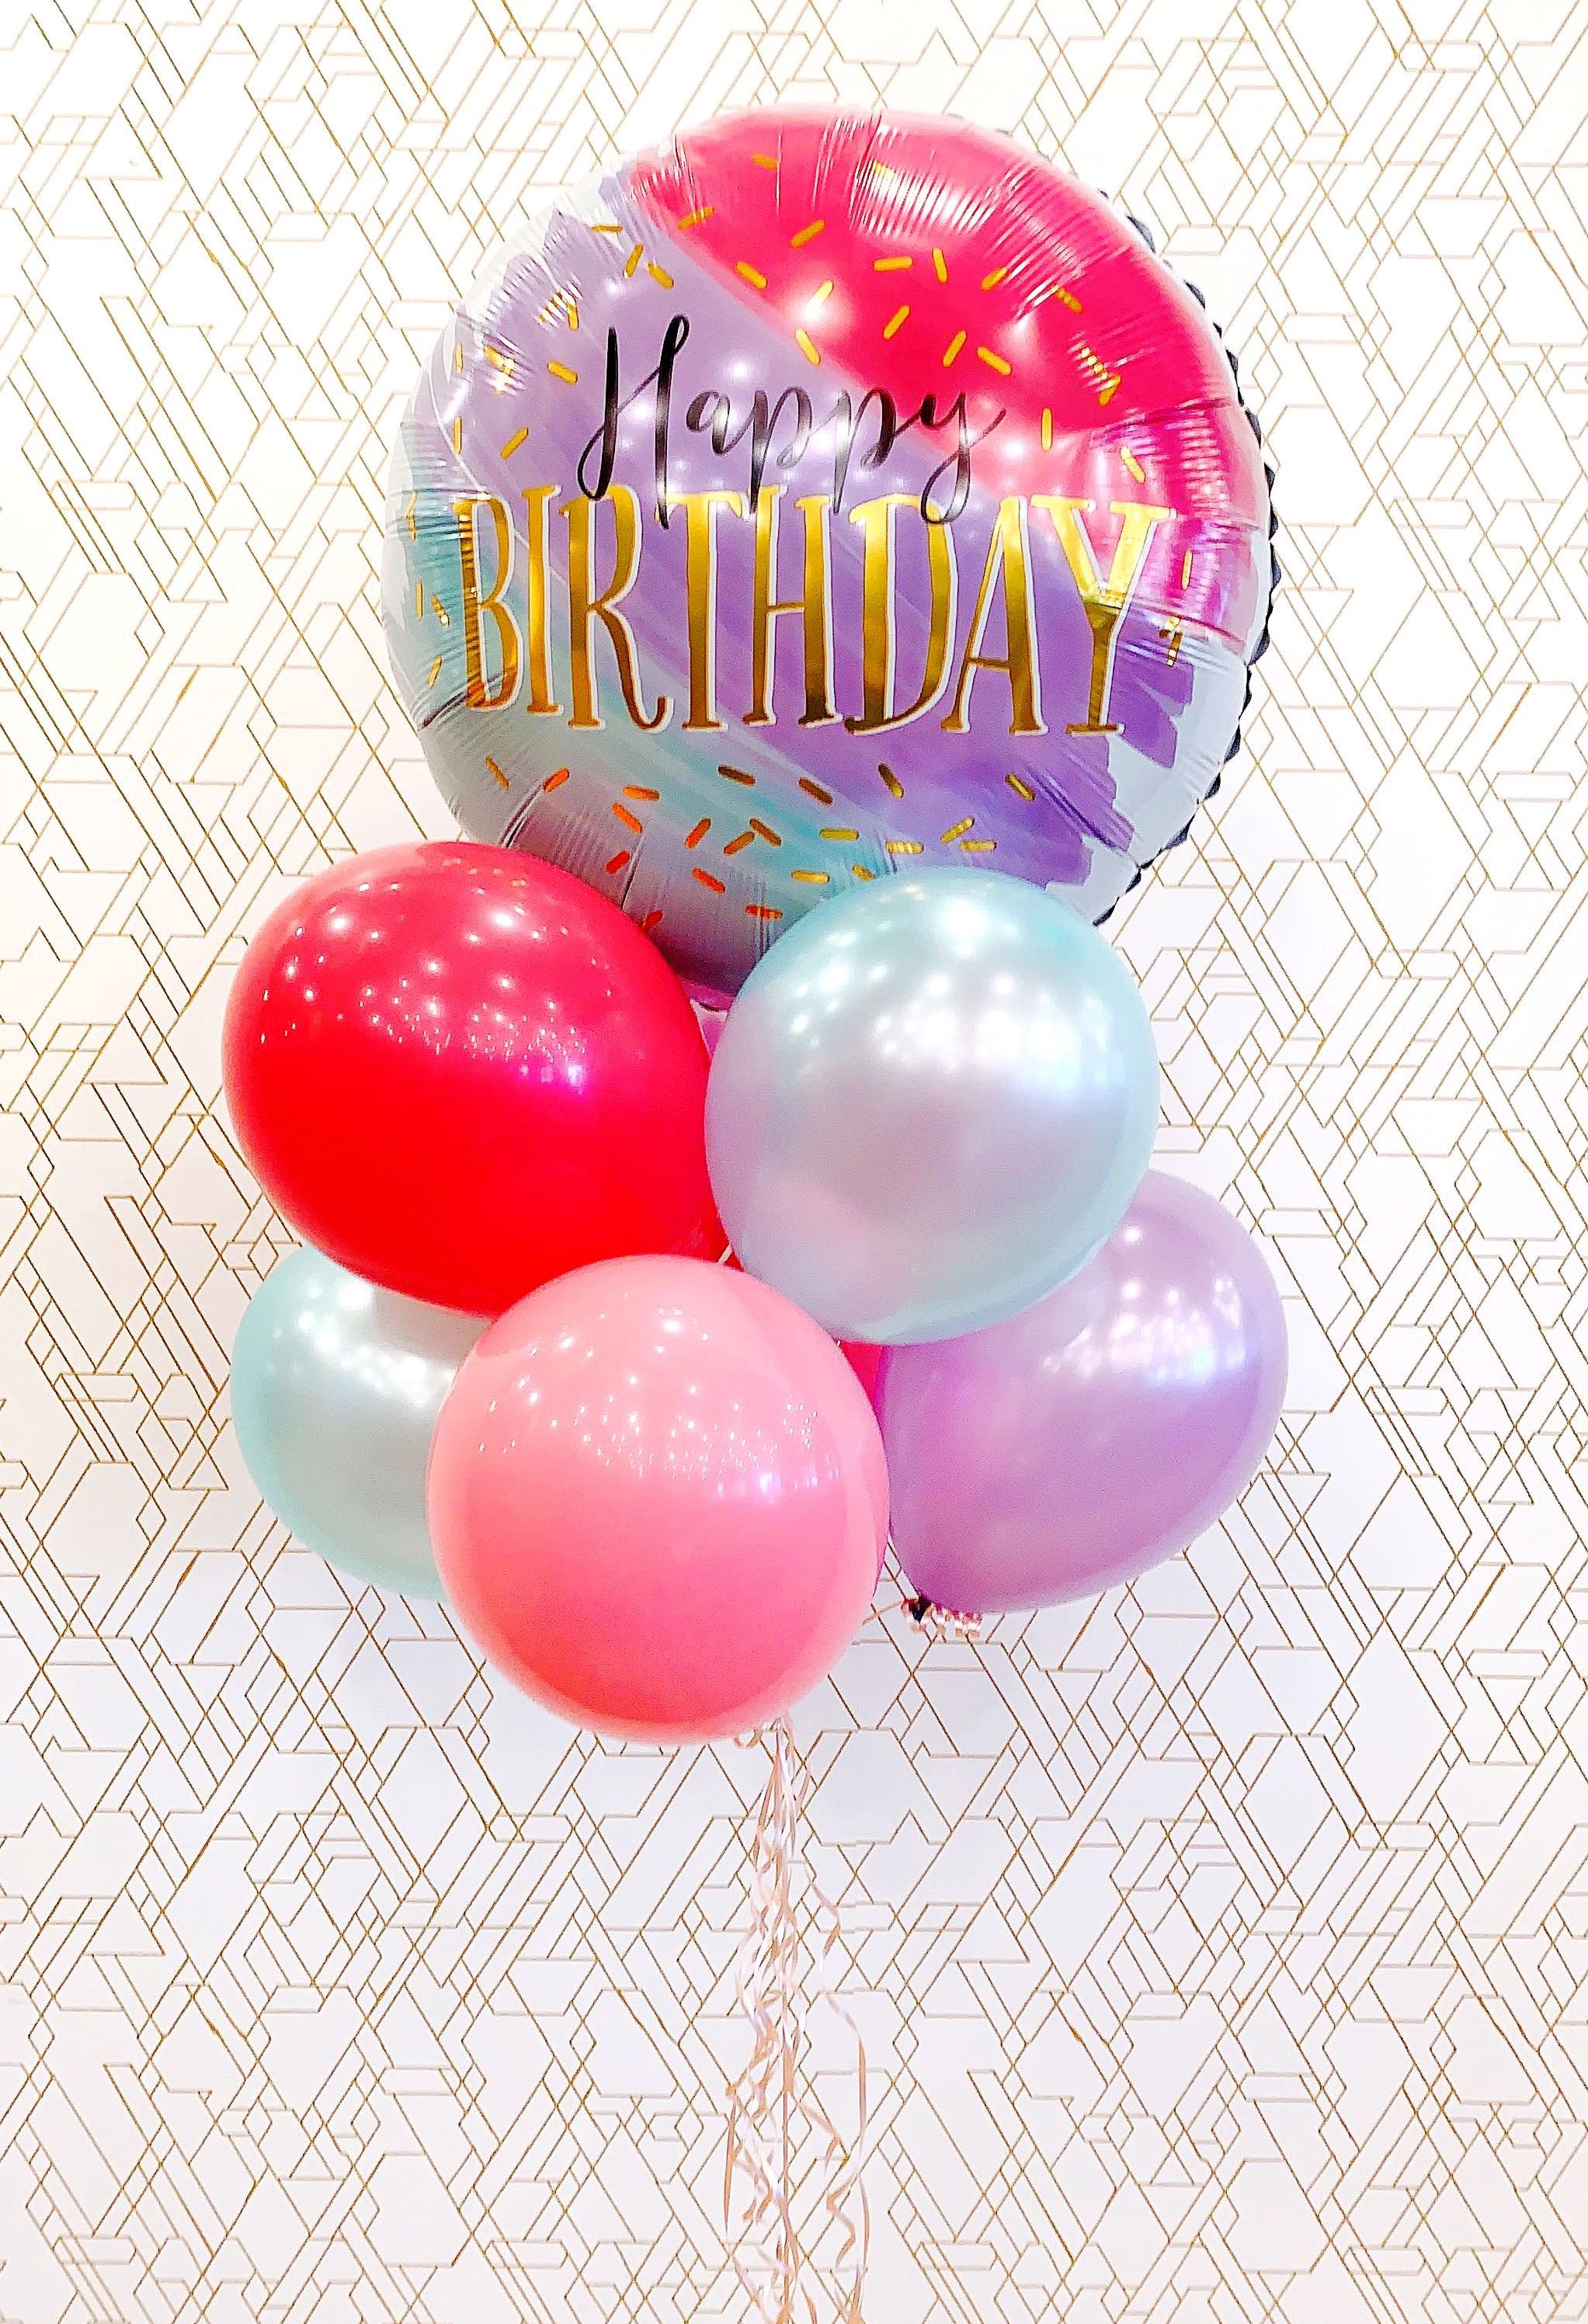 Happy Birthday! JUMBO Deluxe Colorful Foil Balloon Bouquet